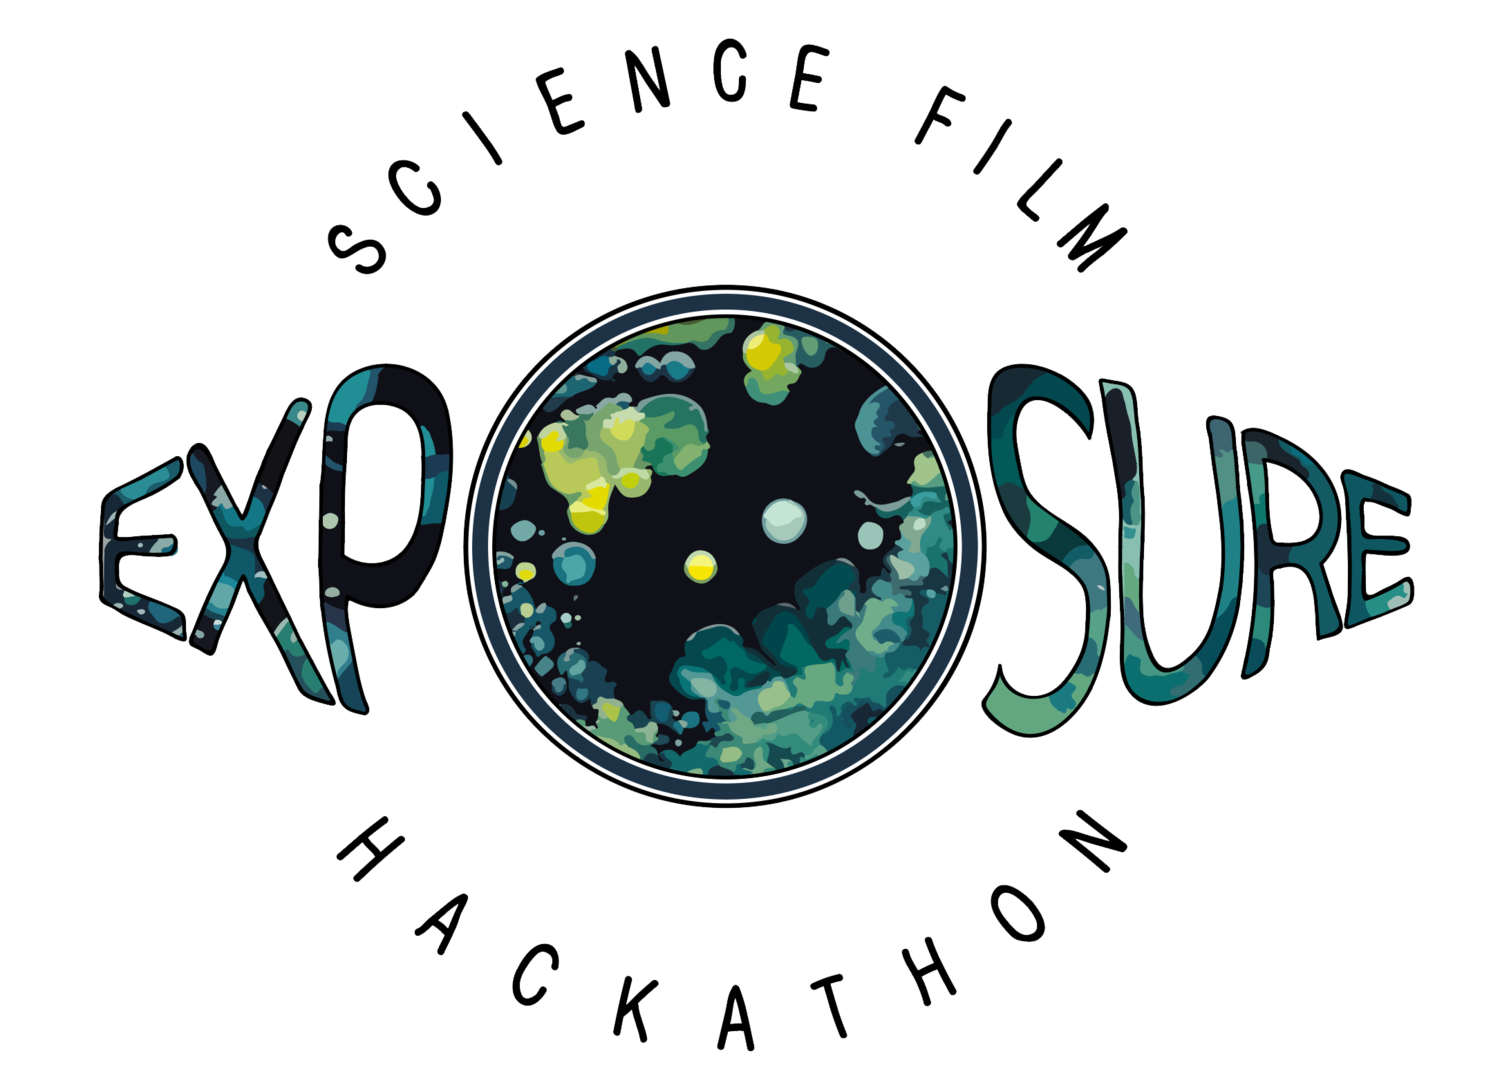 Exposure Science Film Hackathon